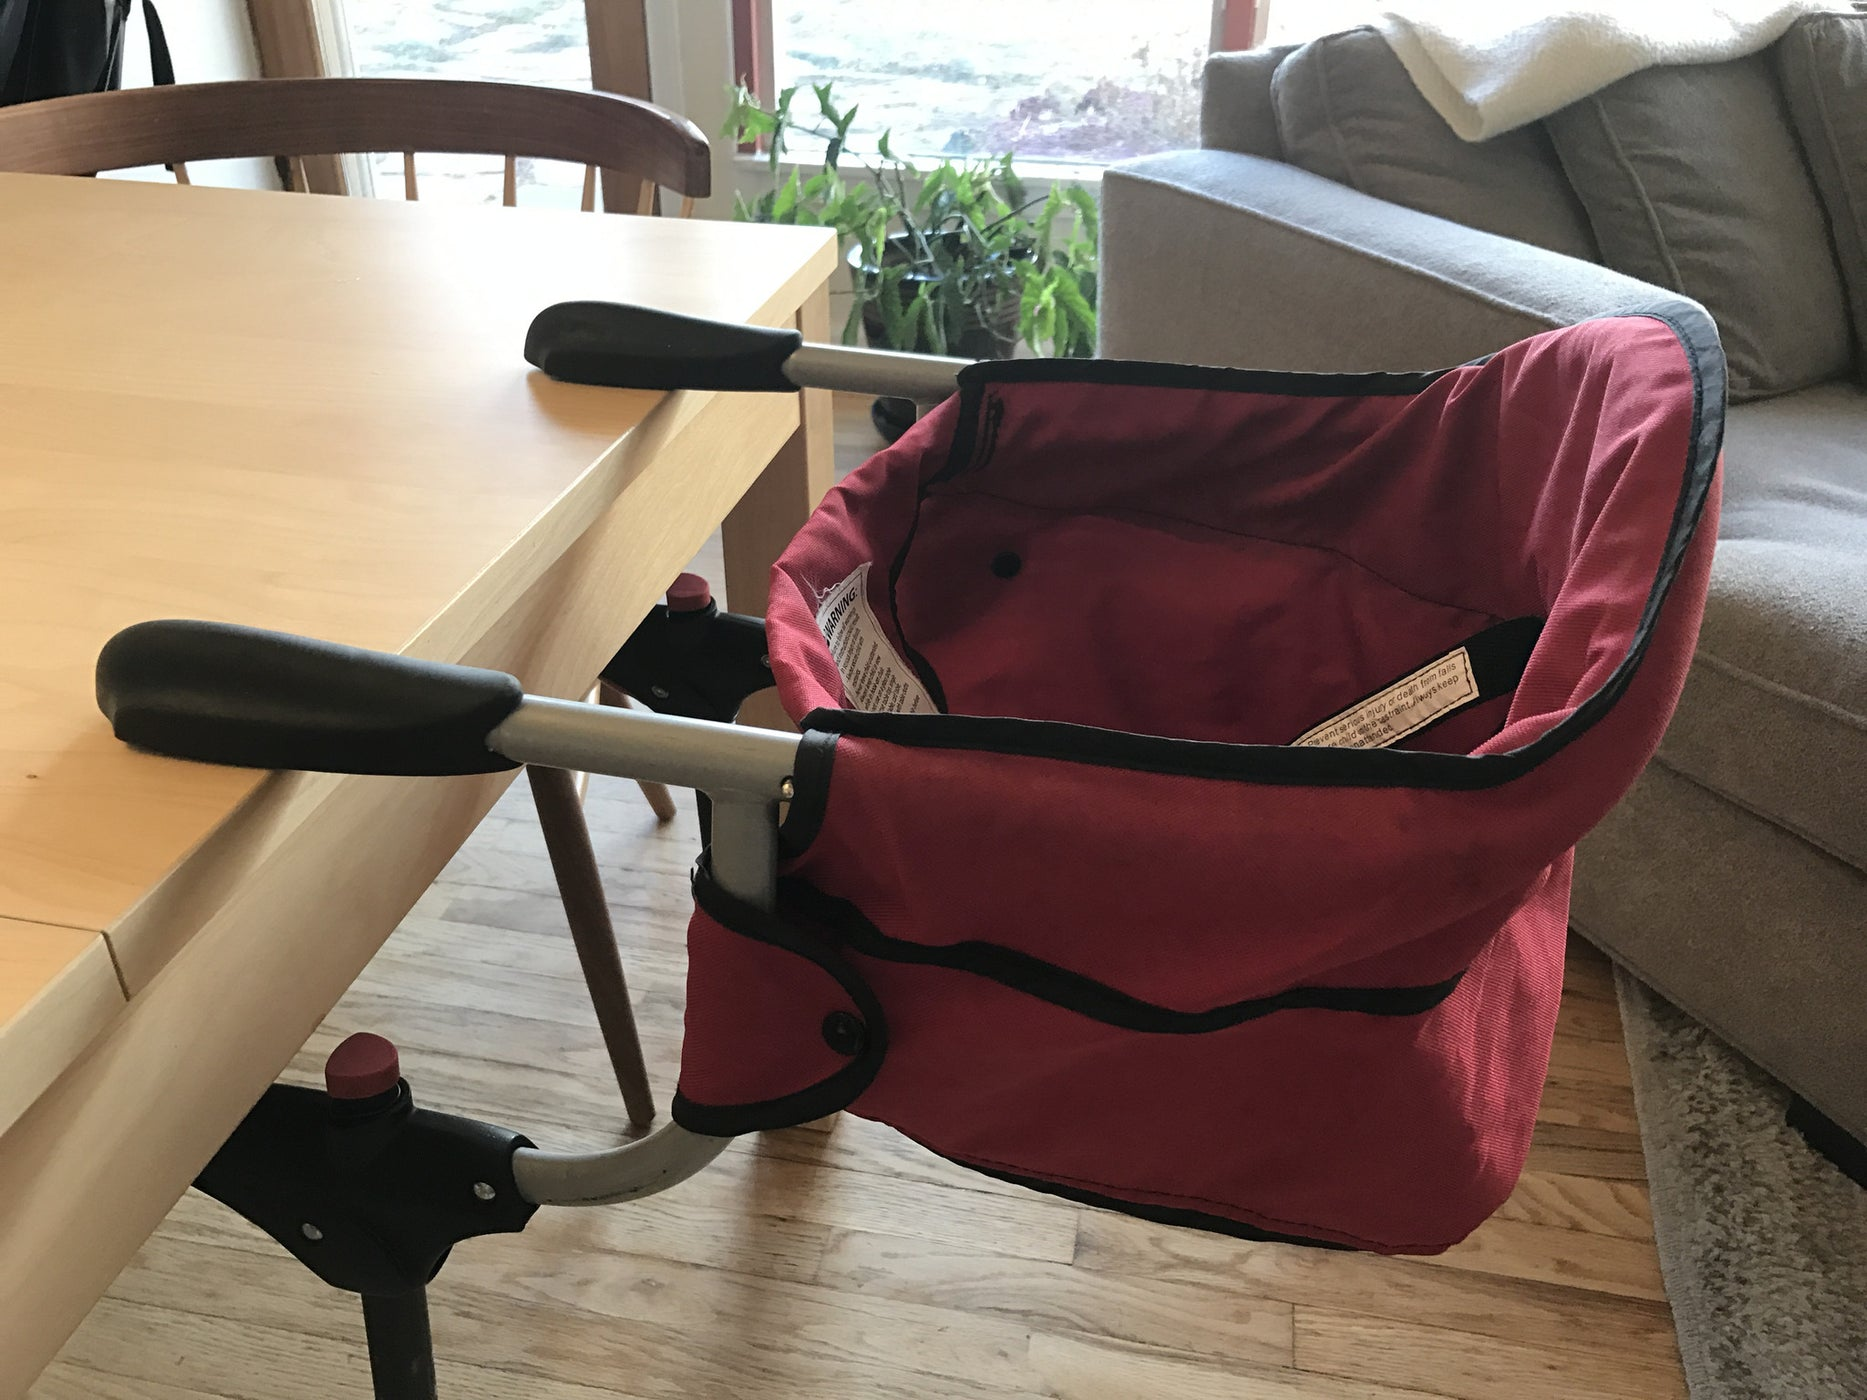 Chicco Hook-on High Chair